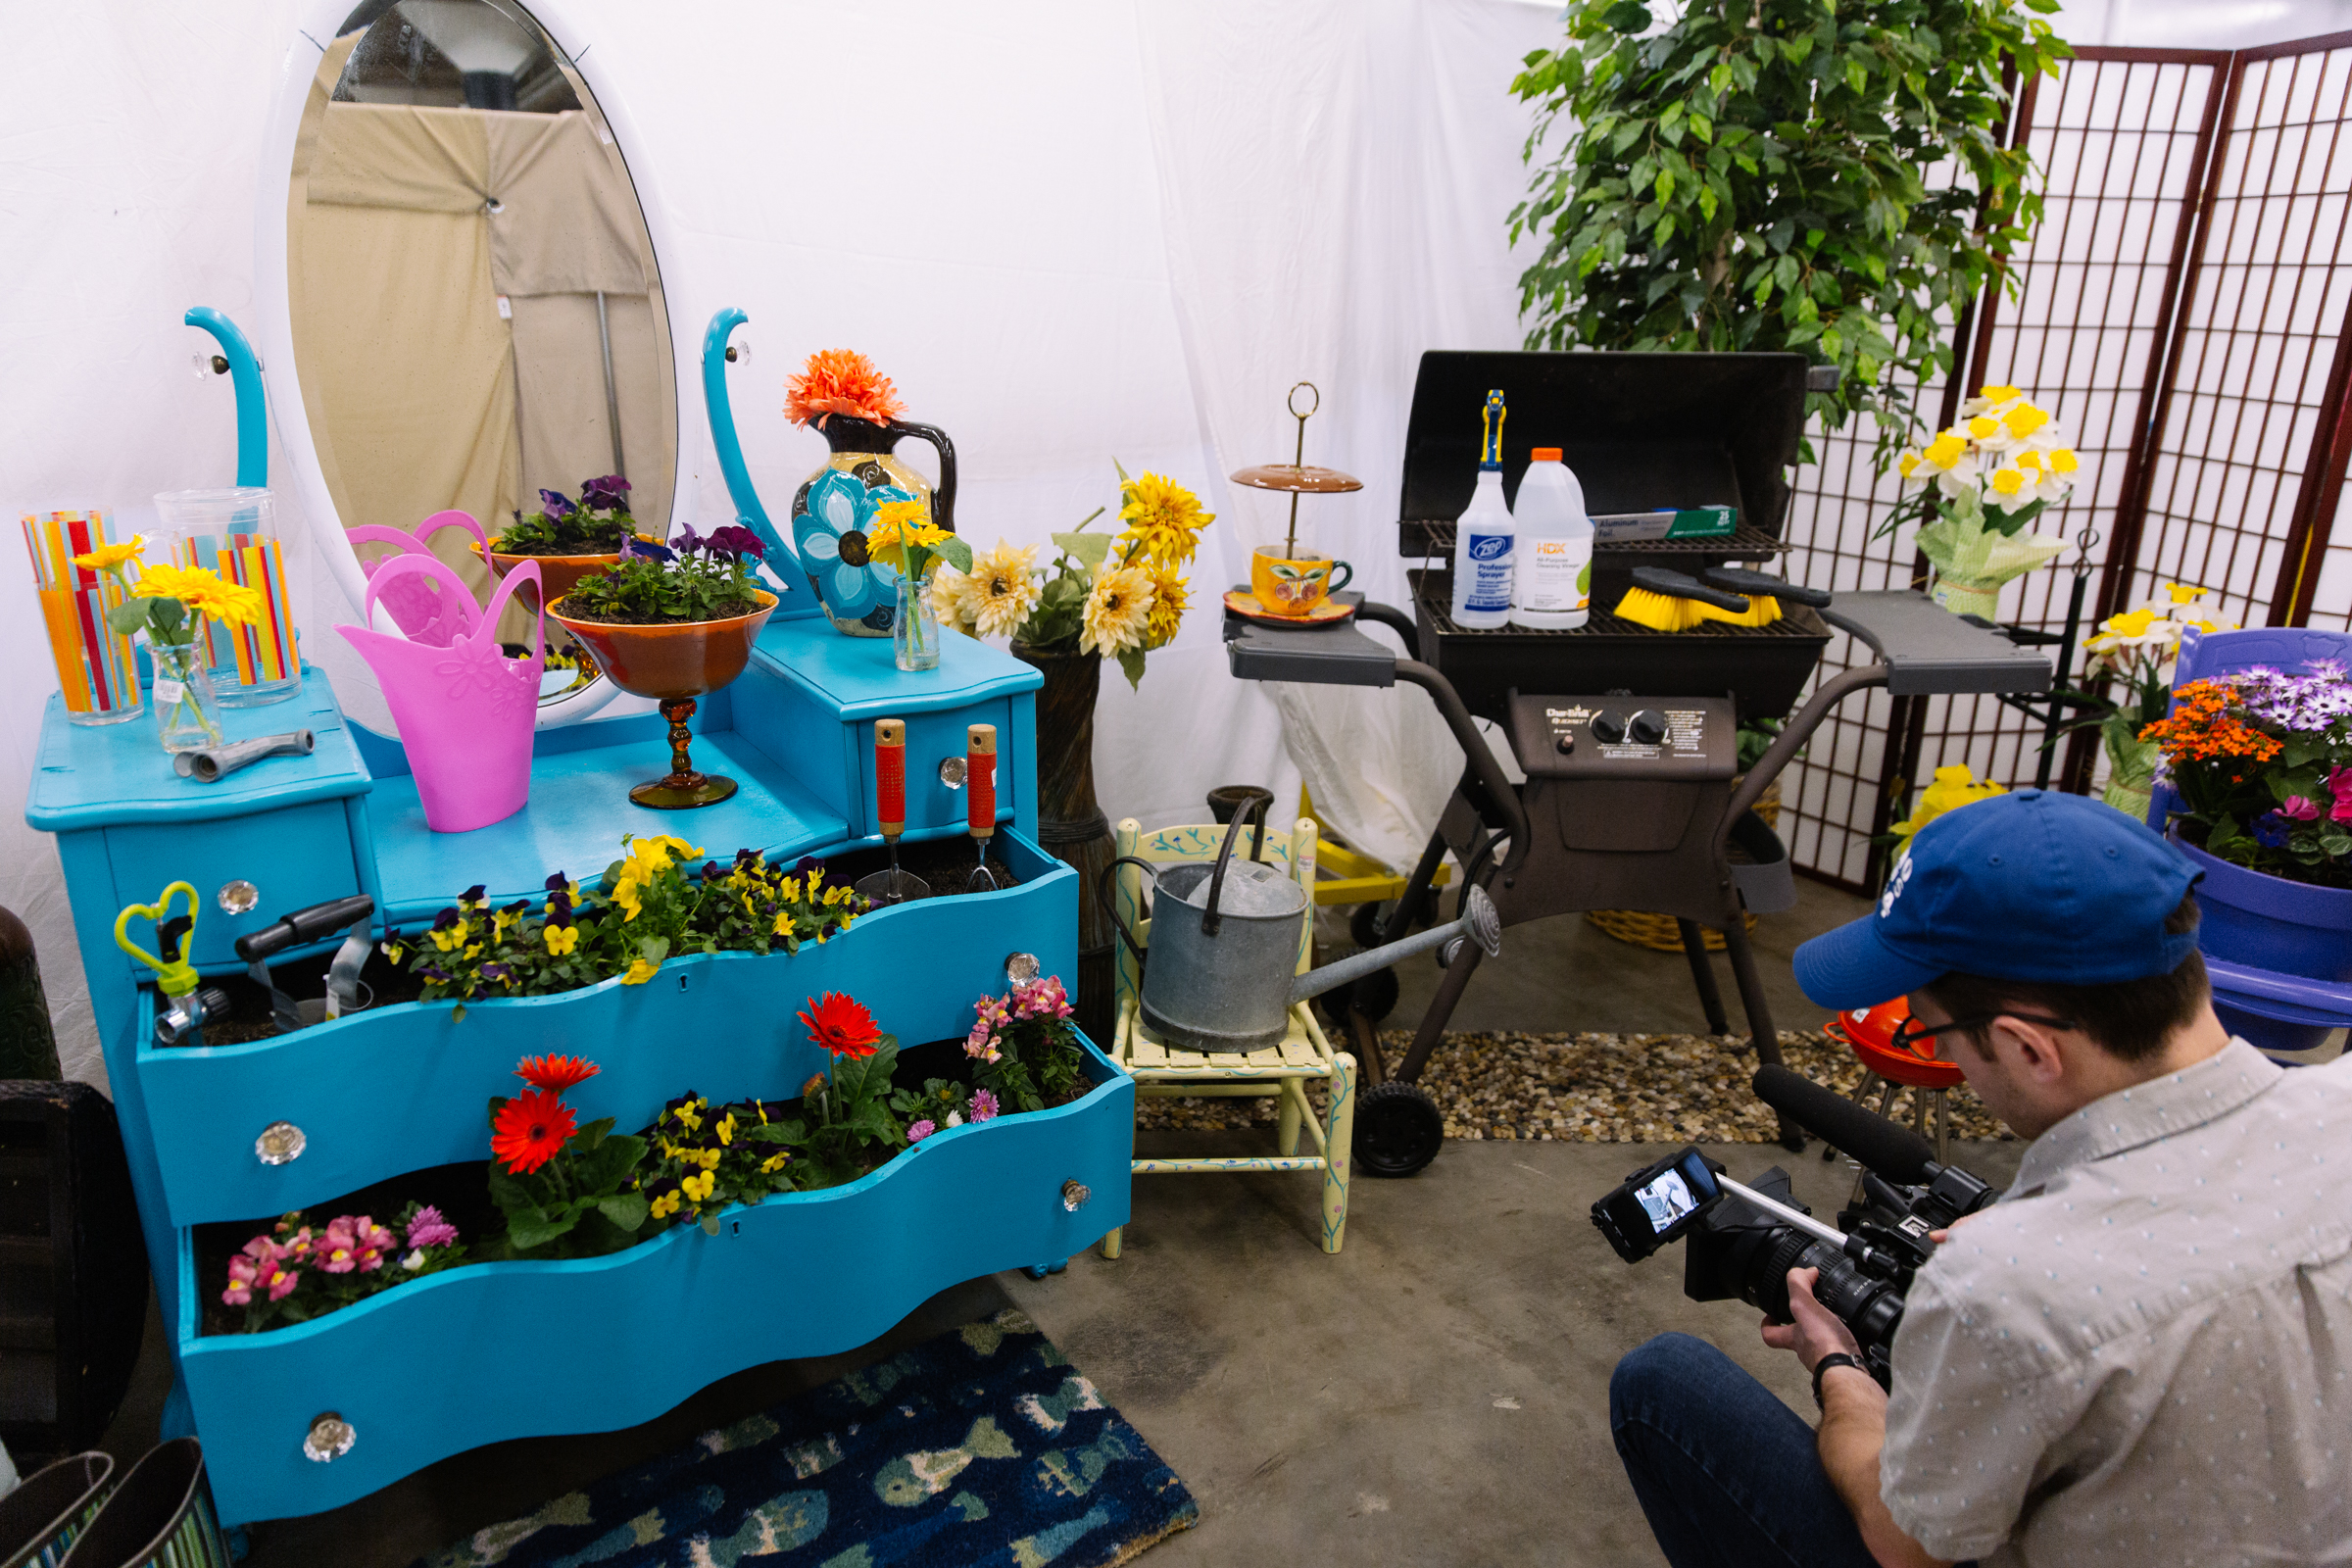 Seattle Goodwill has everything you need to make Mother's Day A-MOM-Zing. Here are some great gift ideas to make for mom, and some easy ways to pretty up mom's patio too! Goodwill's DIY Guy, Gary Foy, shared budget friendly ways to set the stage for mom to have fun in the sun.<p></p>